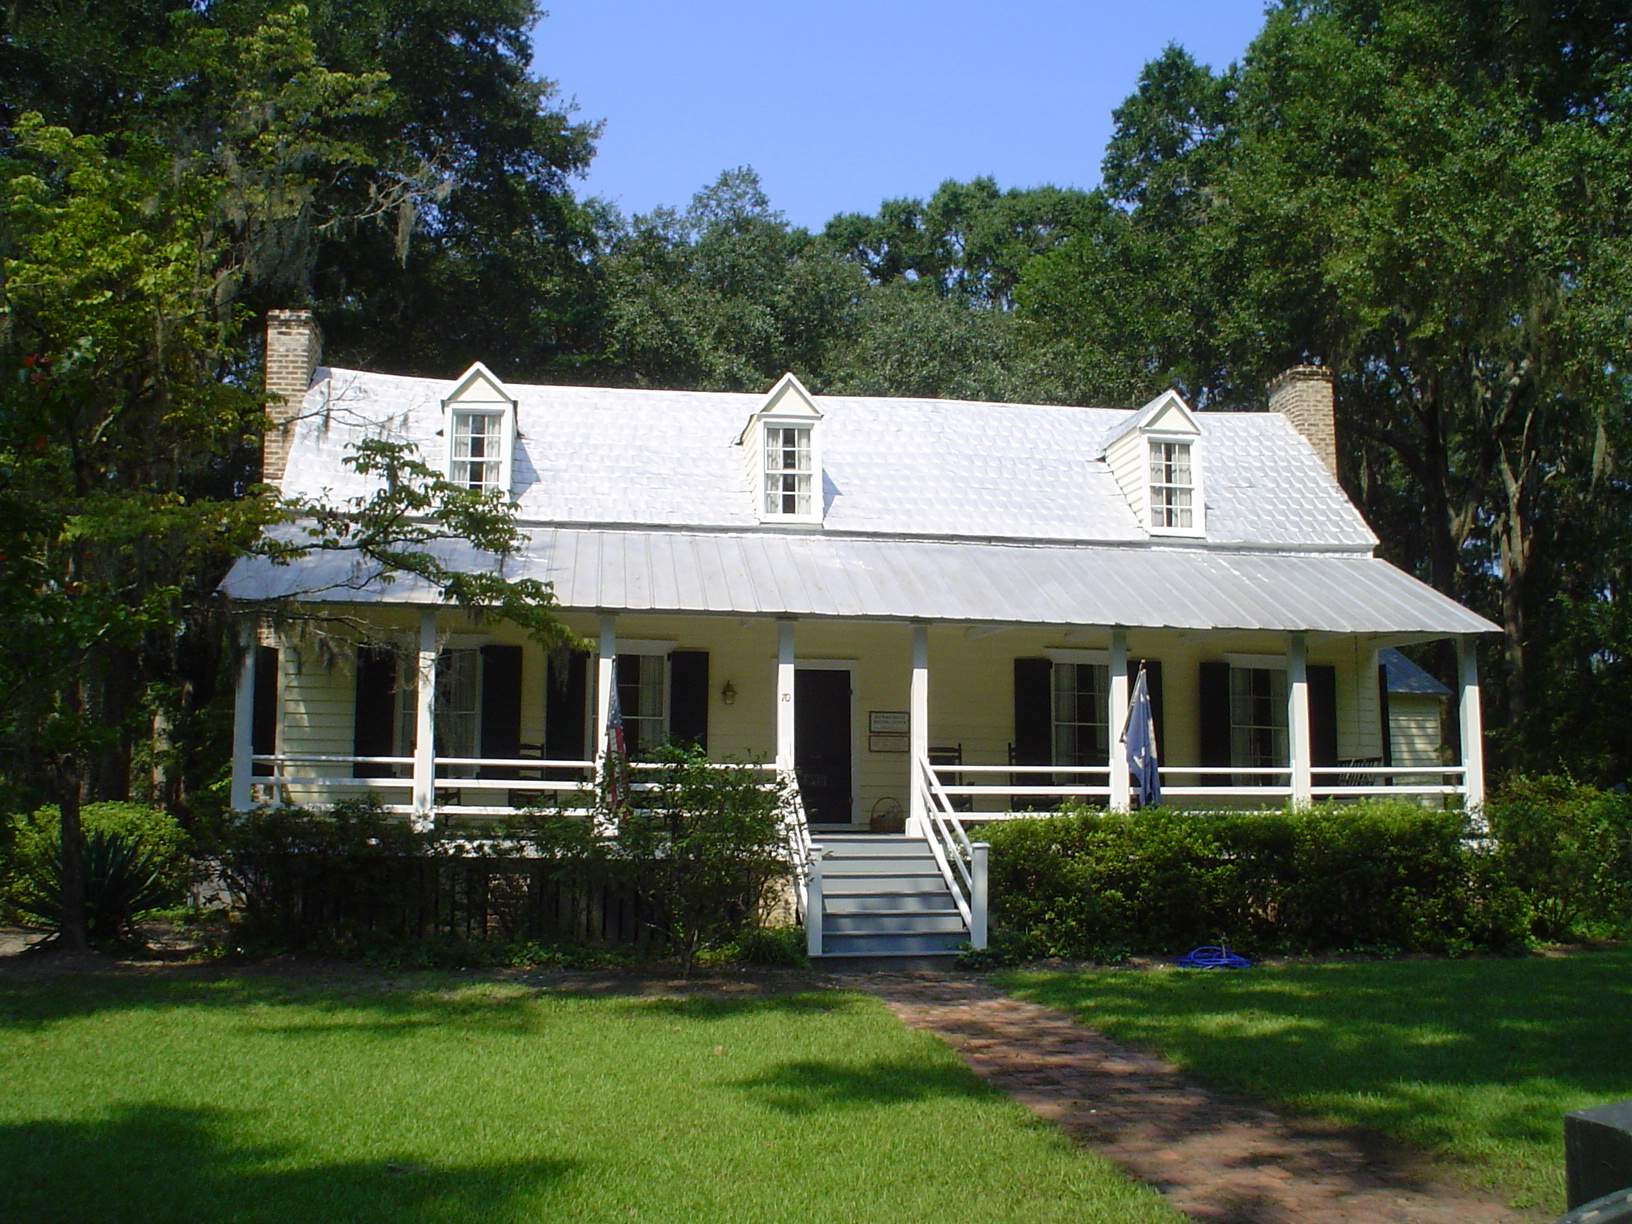 The house also serves as the Bluffton Welcome Center